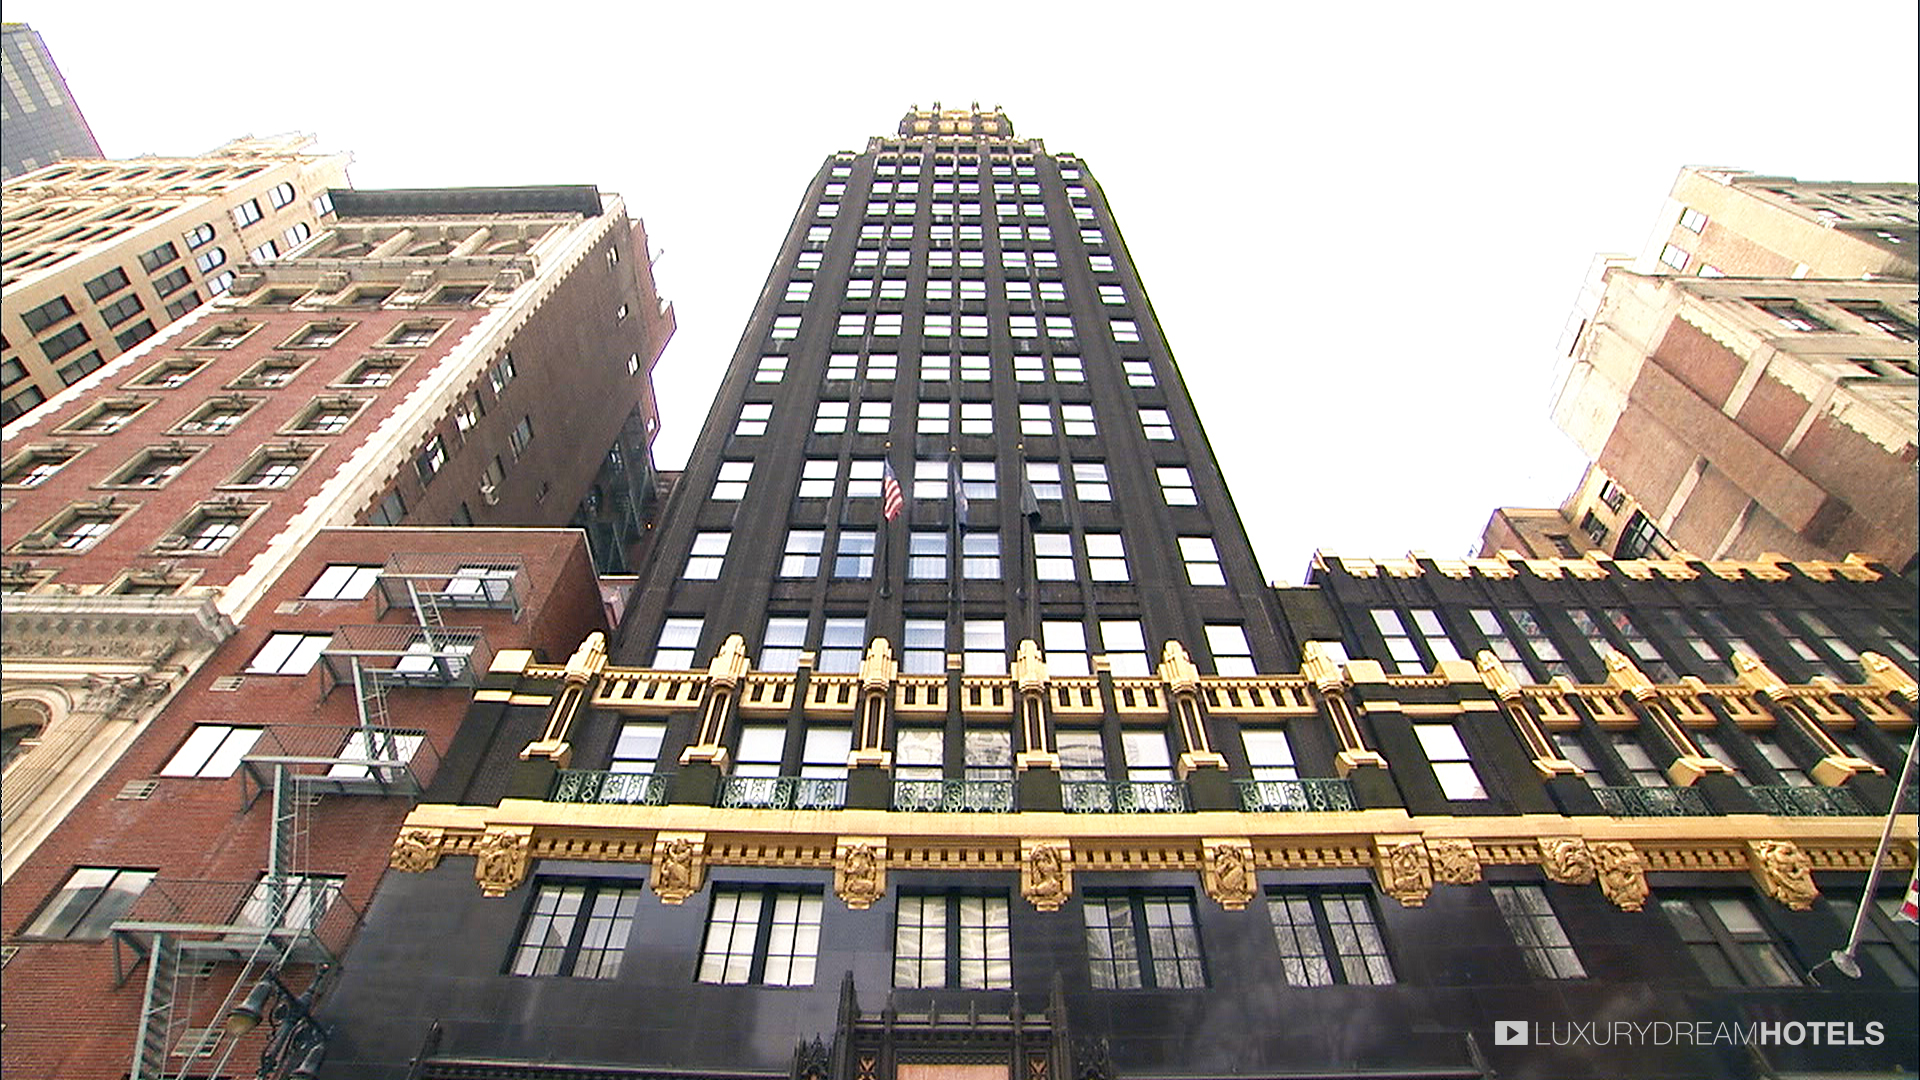 Luxury Hotel The Bryant Park New York United States Dream Hotels